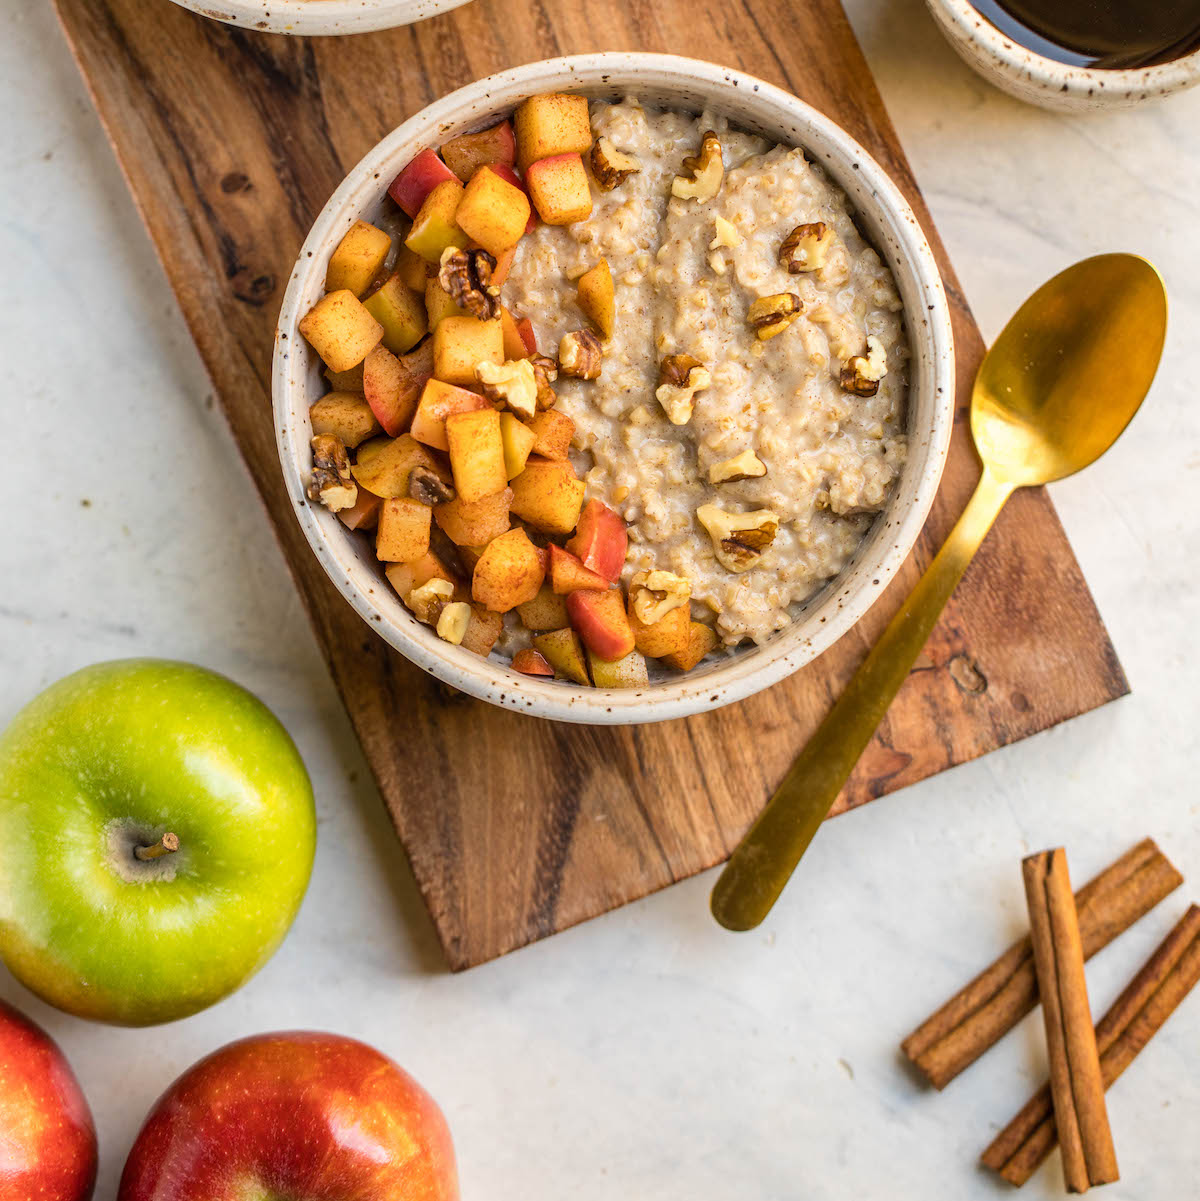 CINNAMON BAKED APPLE OVERNIGHT OATS | REFŪL